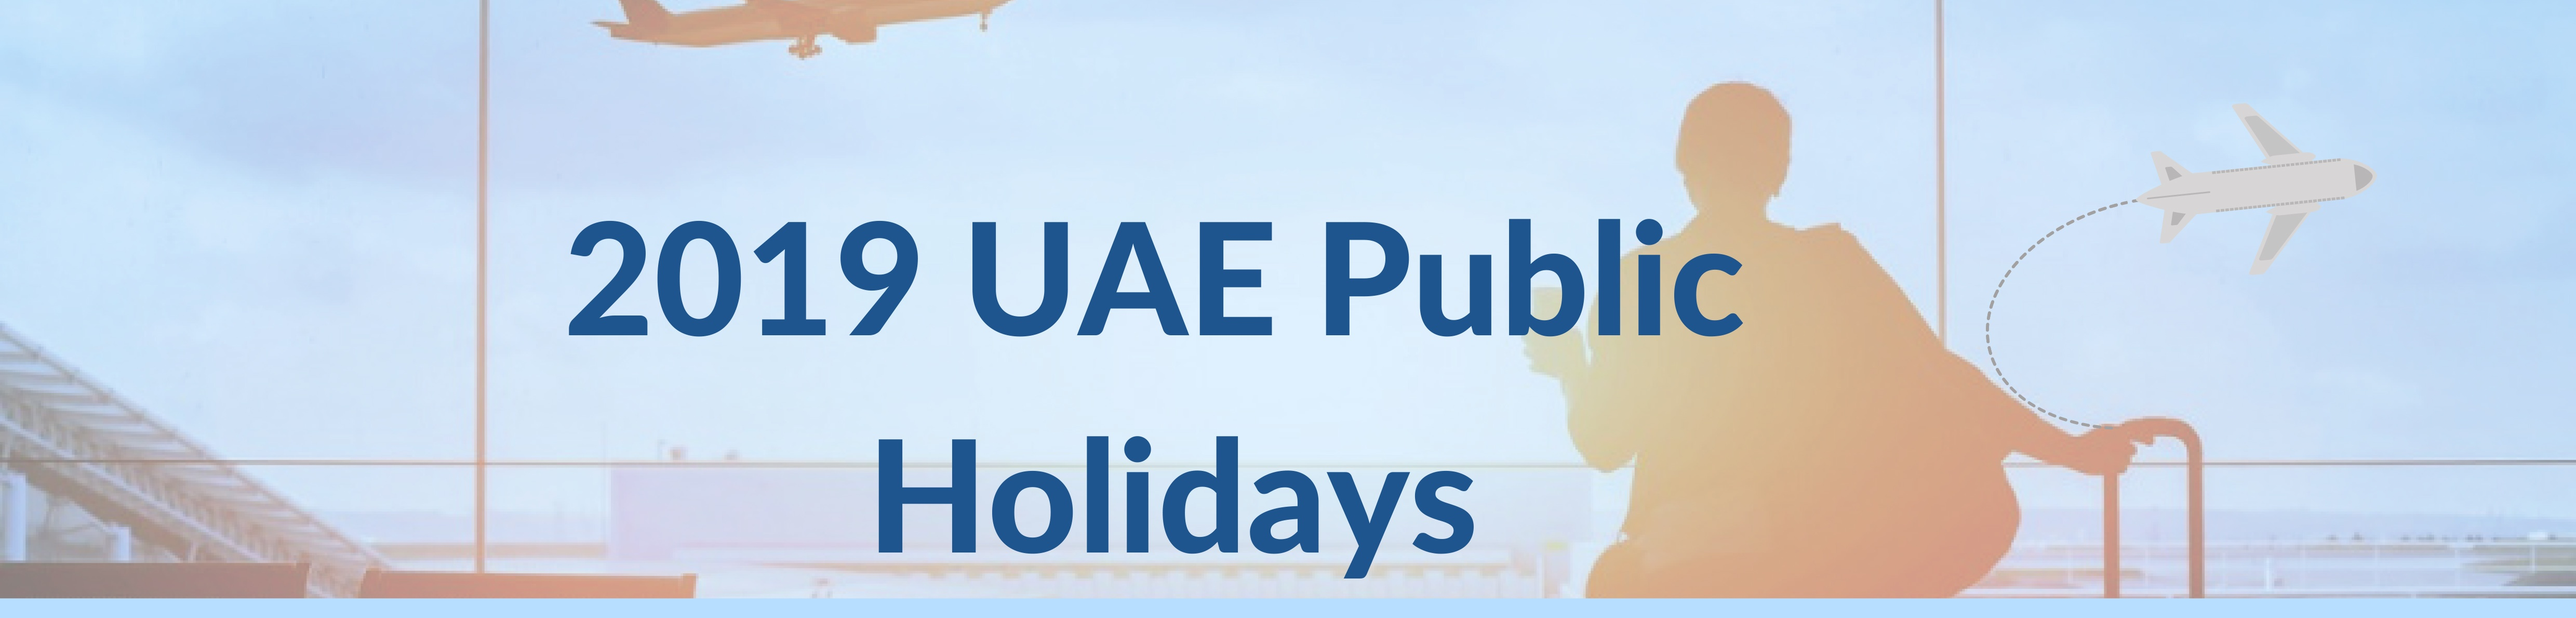 UAE Public Holidays 2019